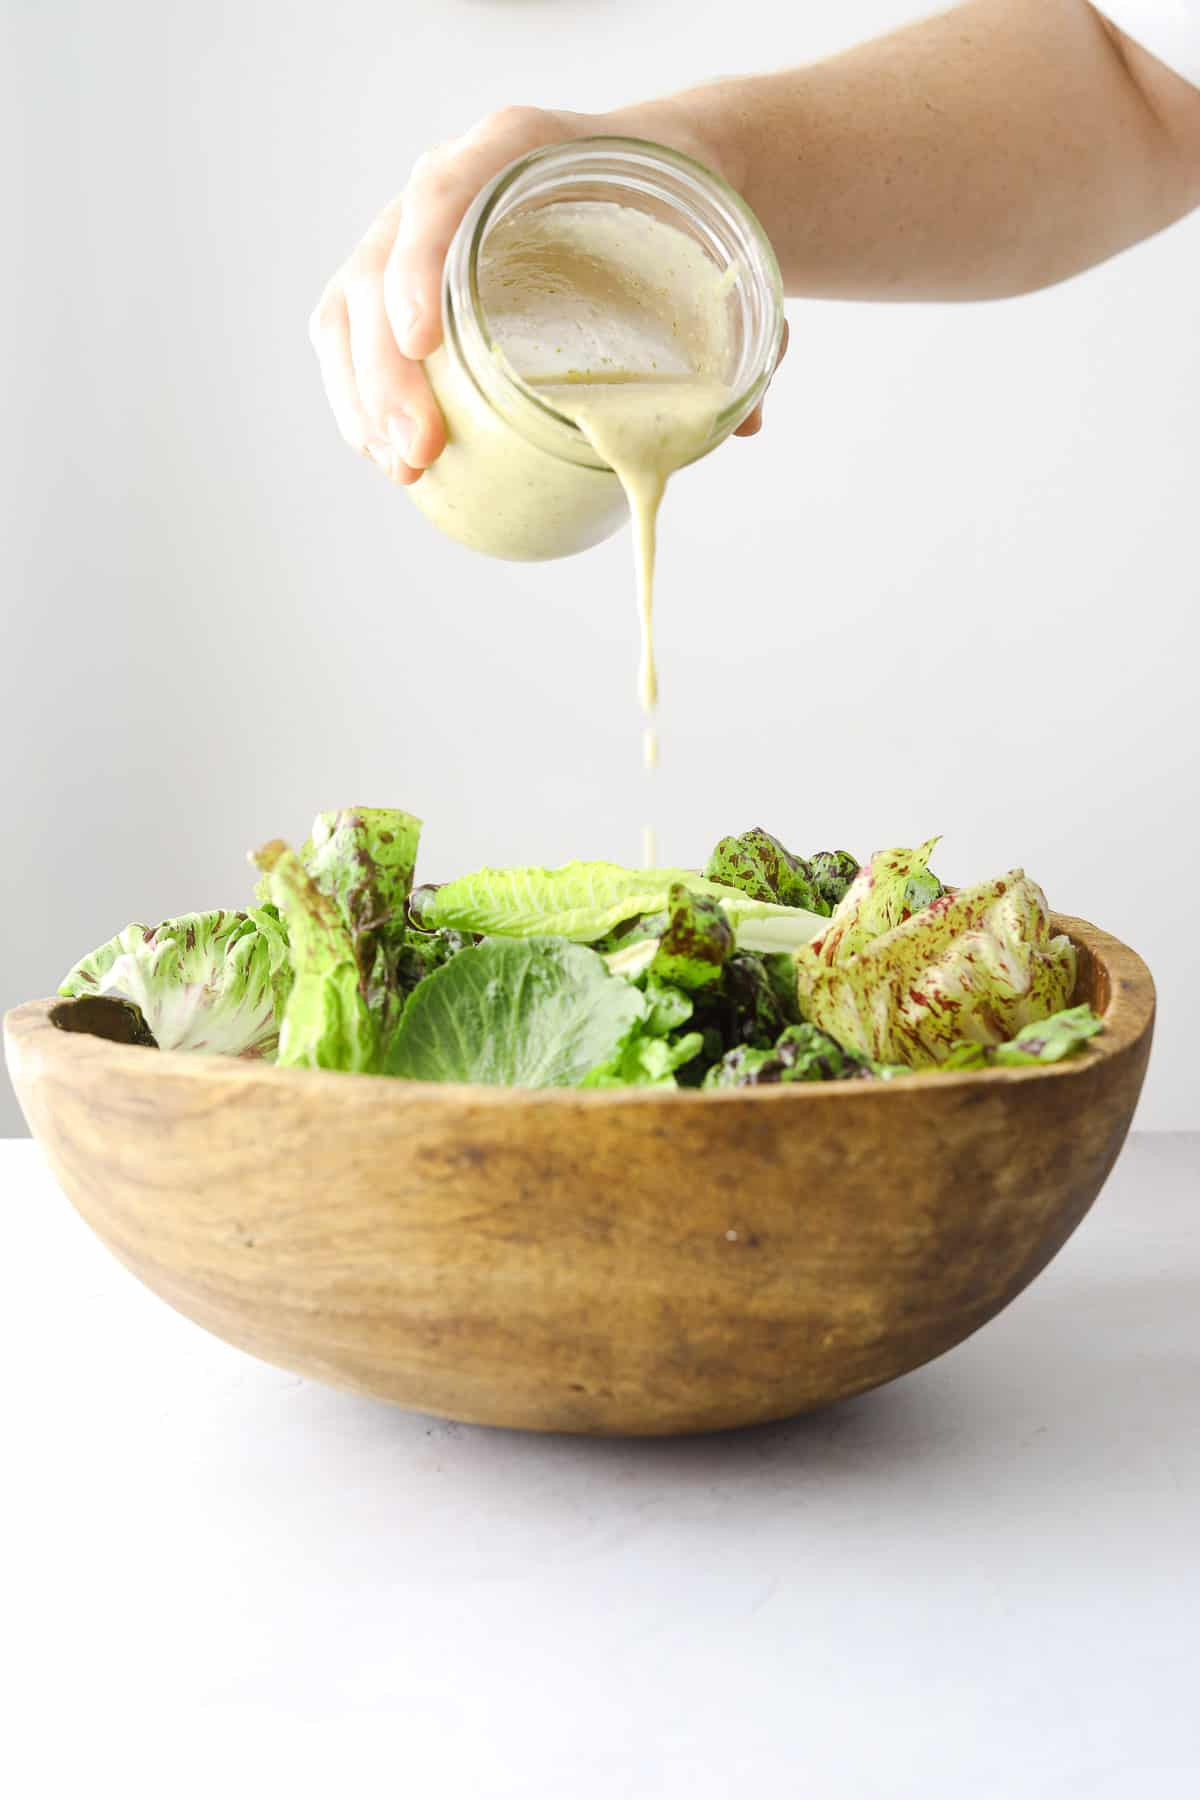 a jar of vinaigrette being poured into a wooden salad bowl filled with lettuce